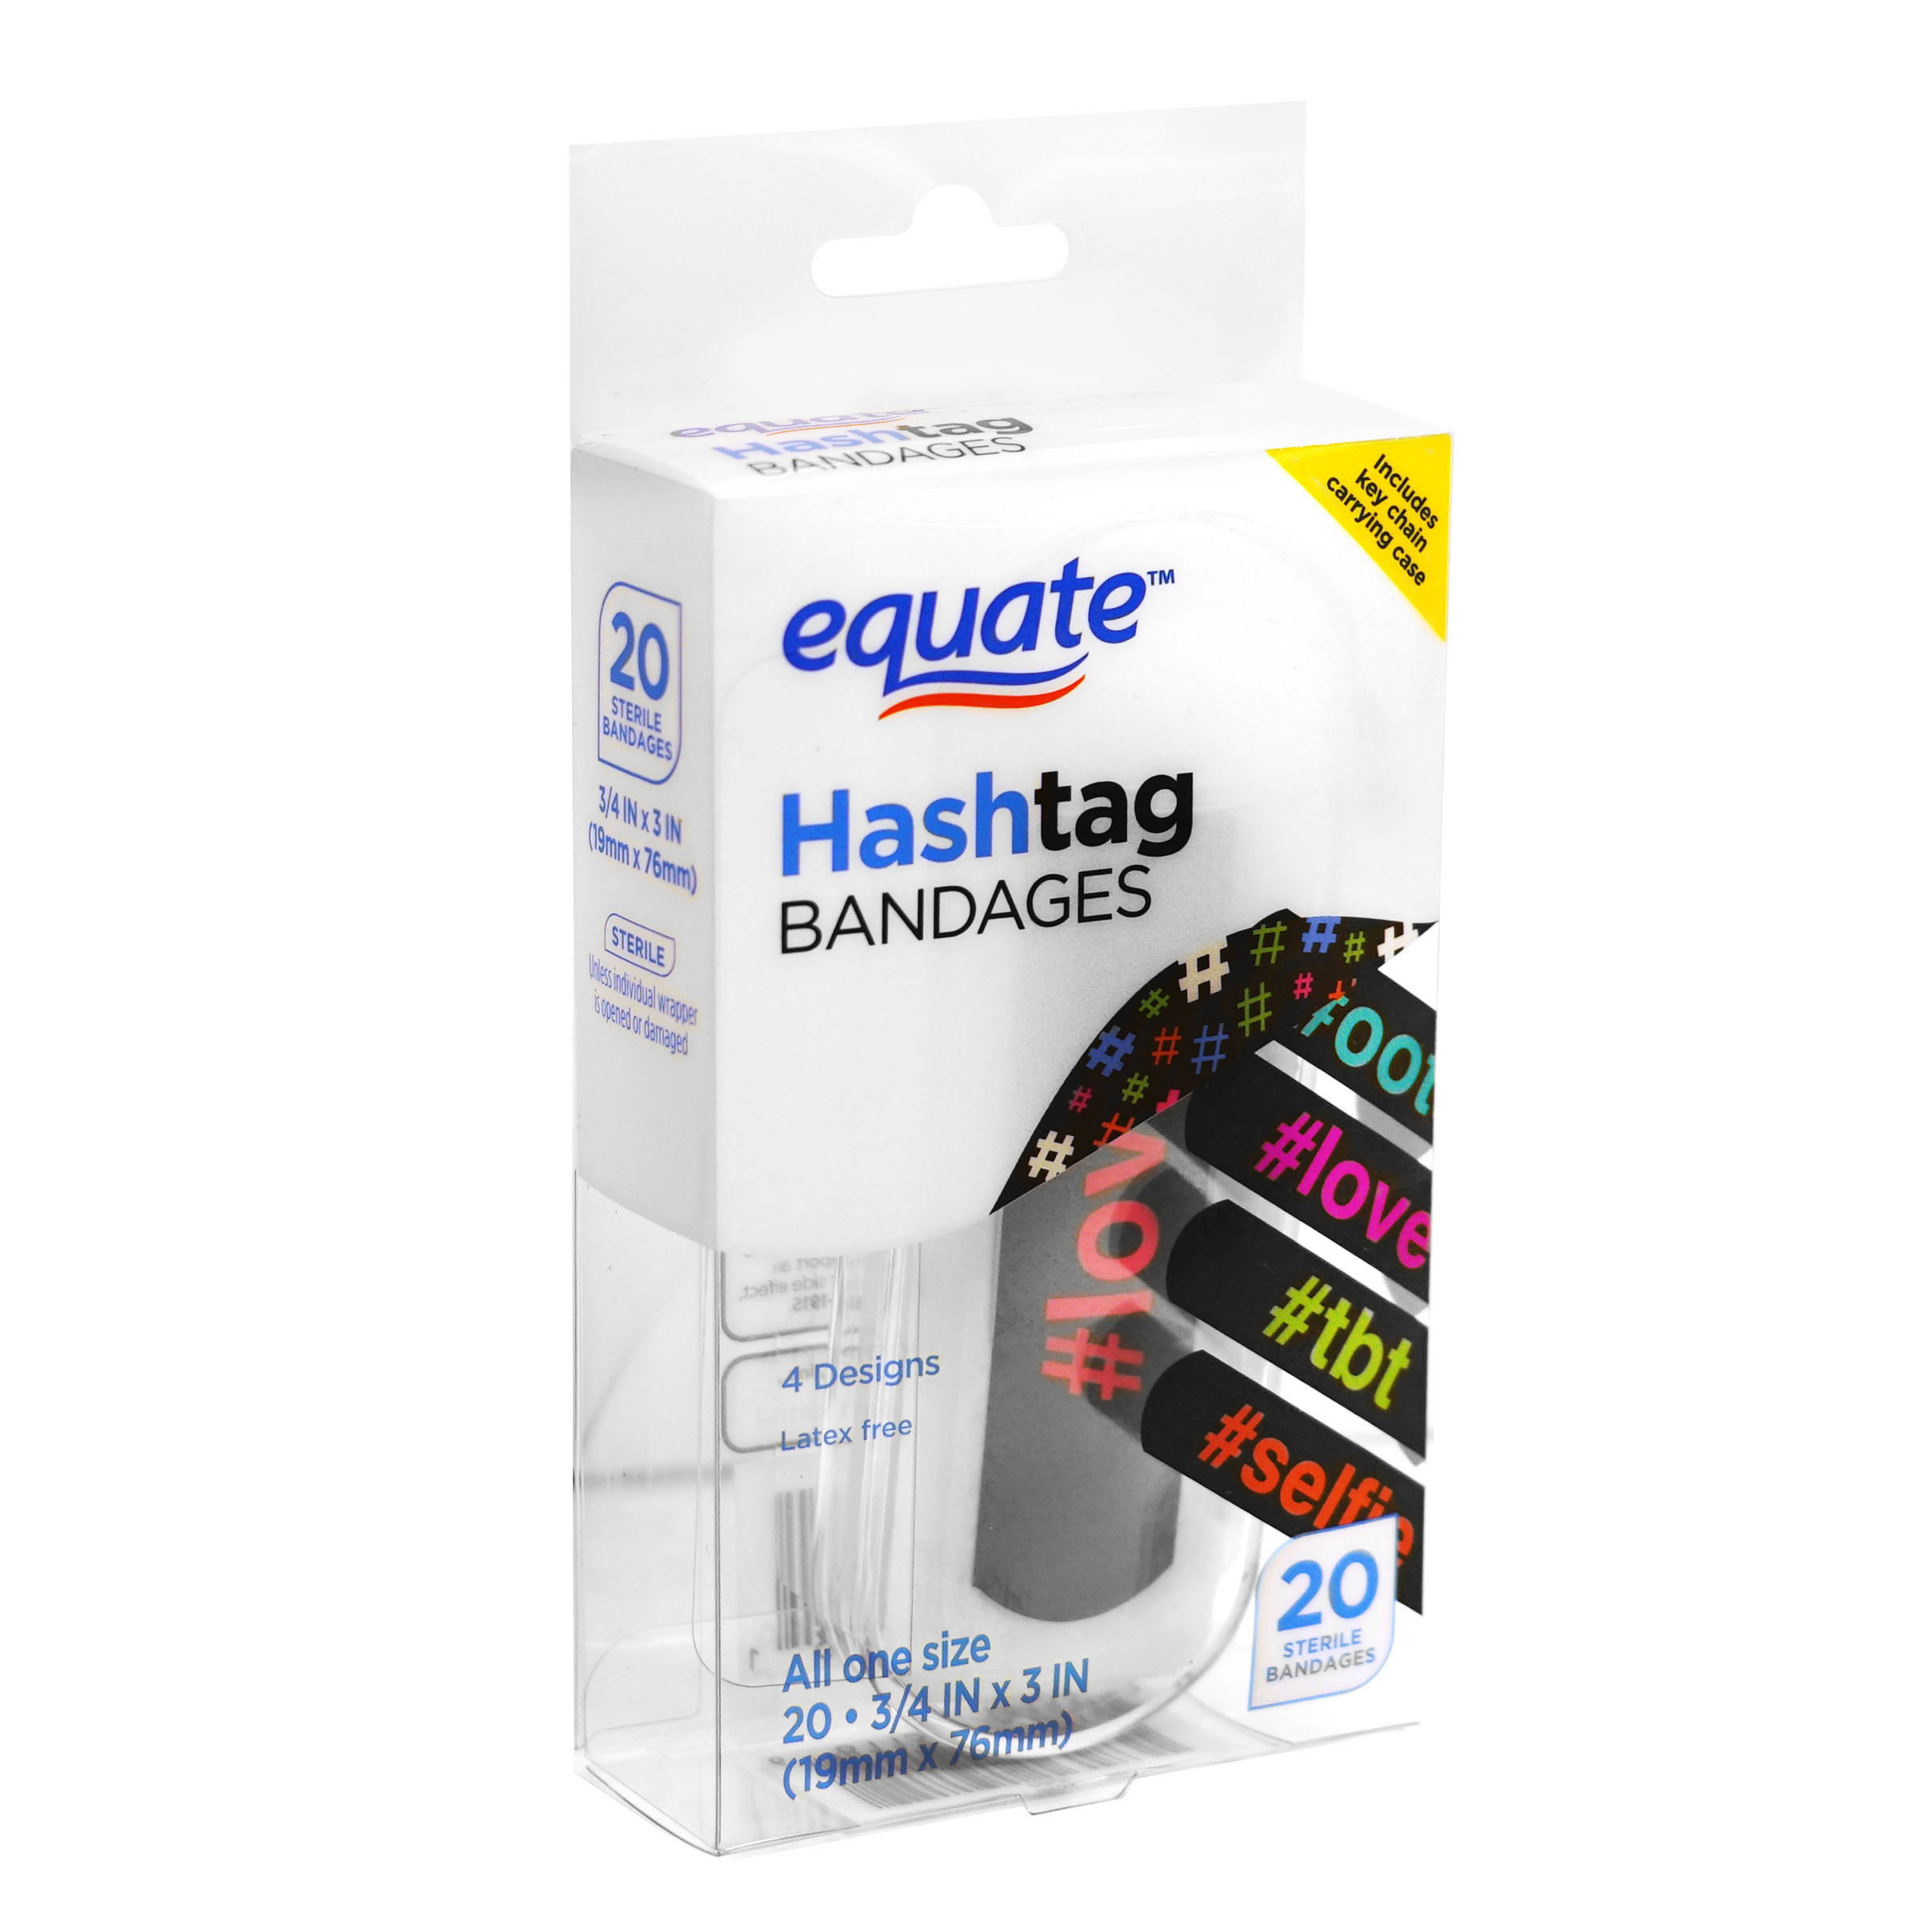 Equate Hashtag Bandages, 20.75 inches X 3 inches, 20 count